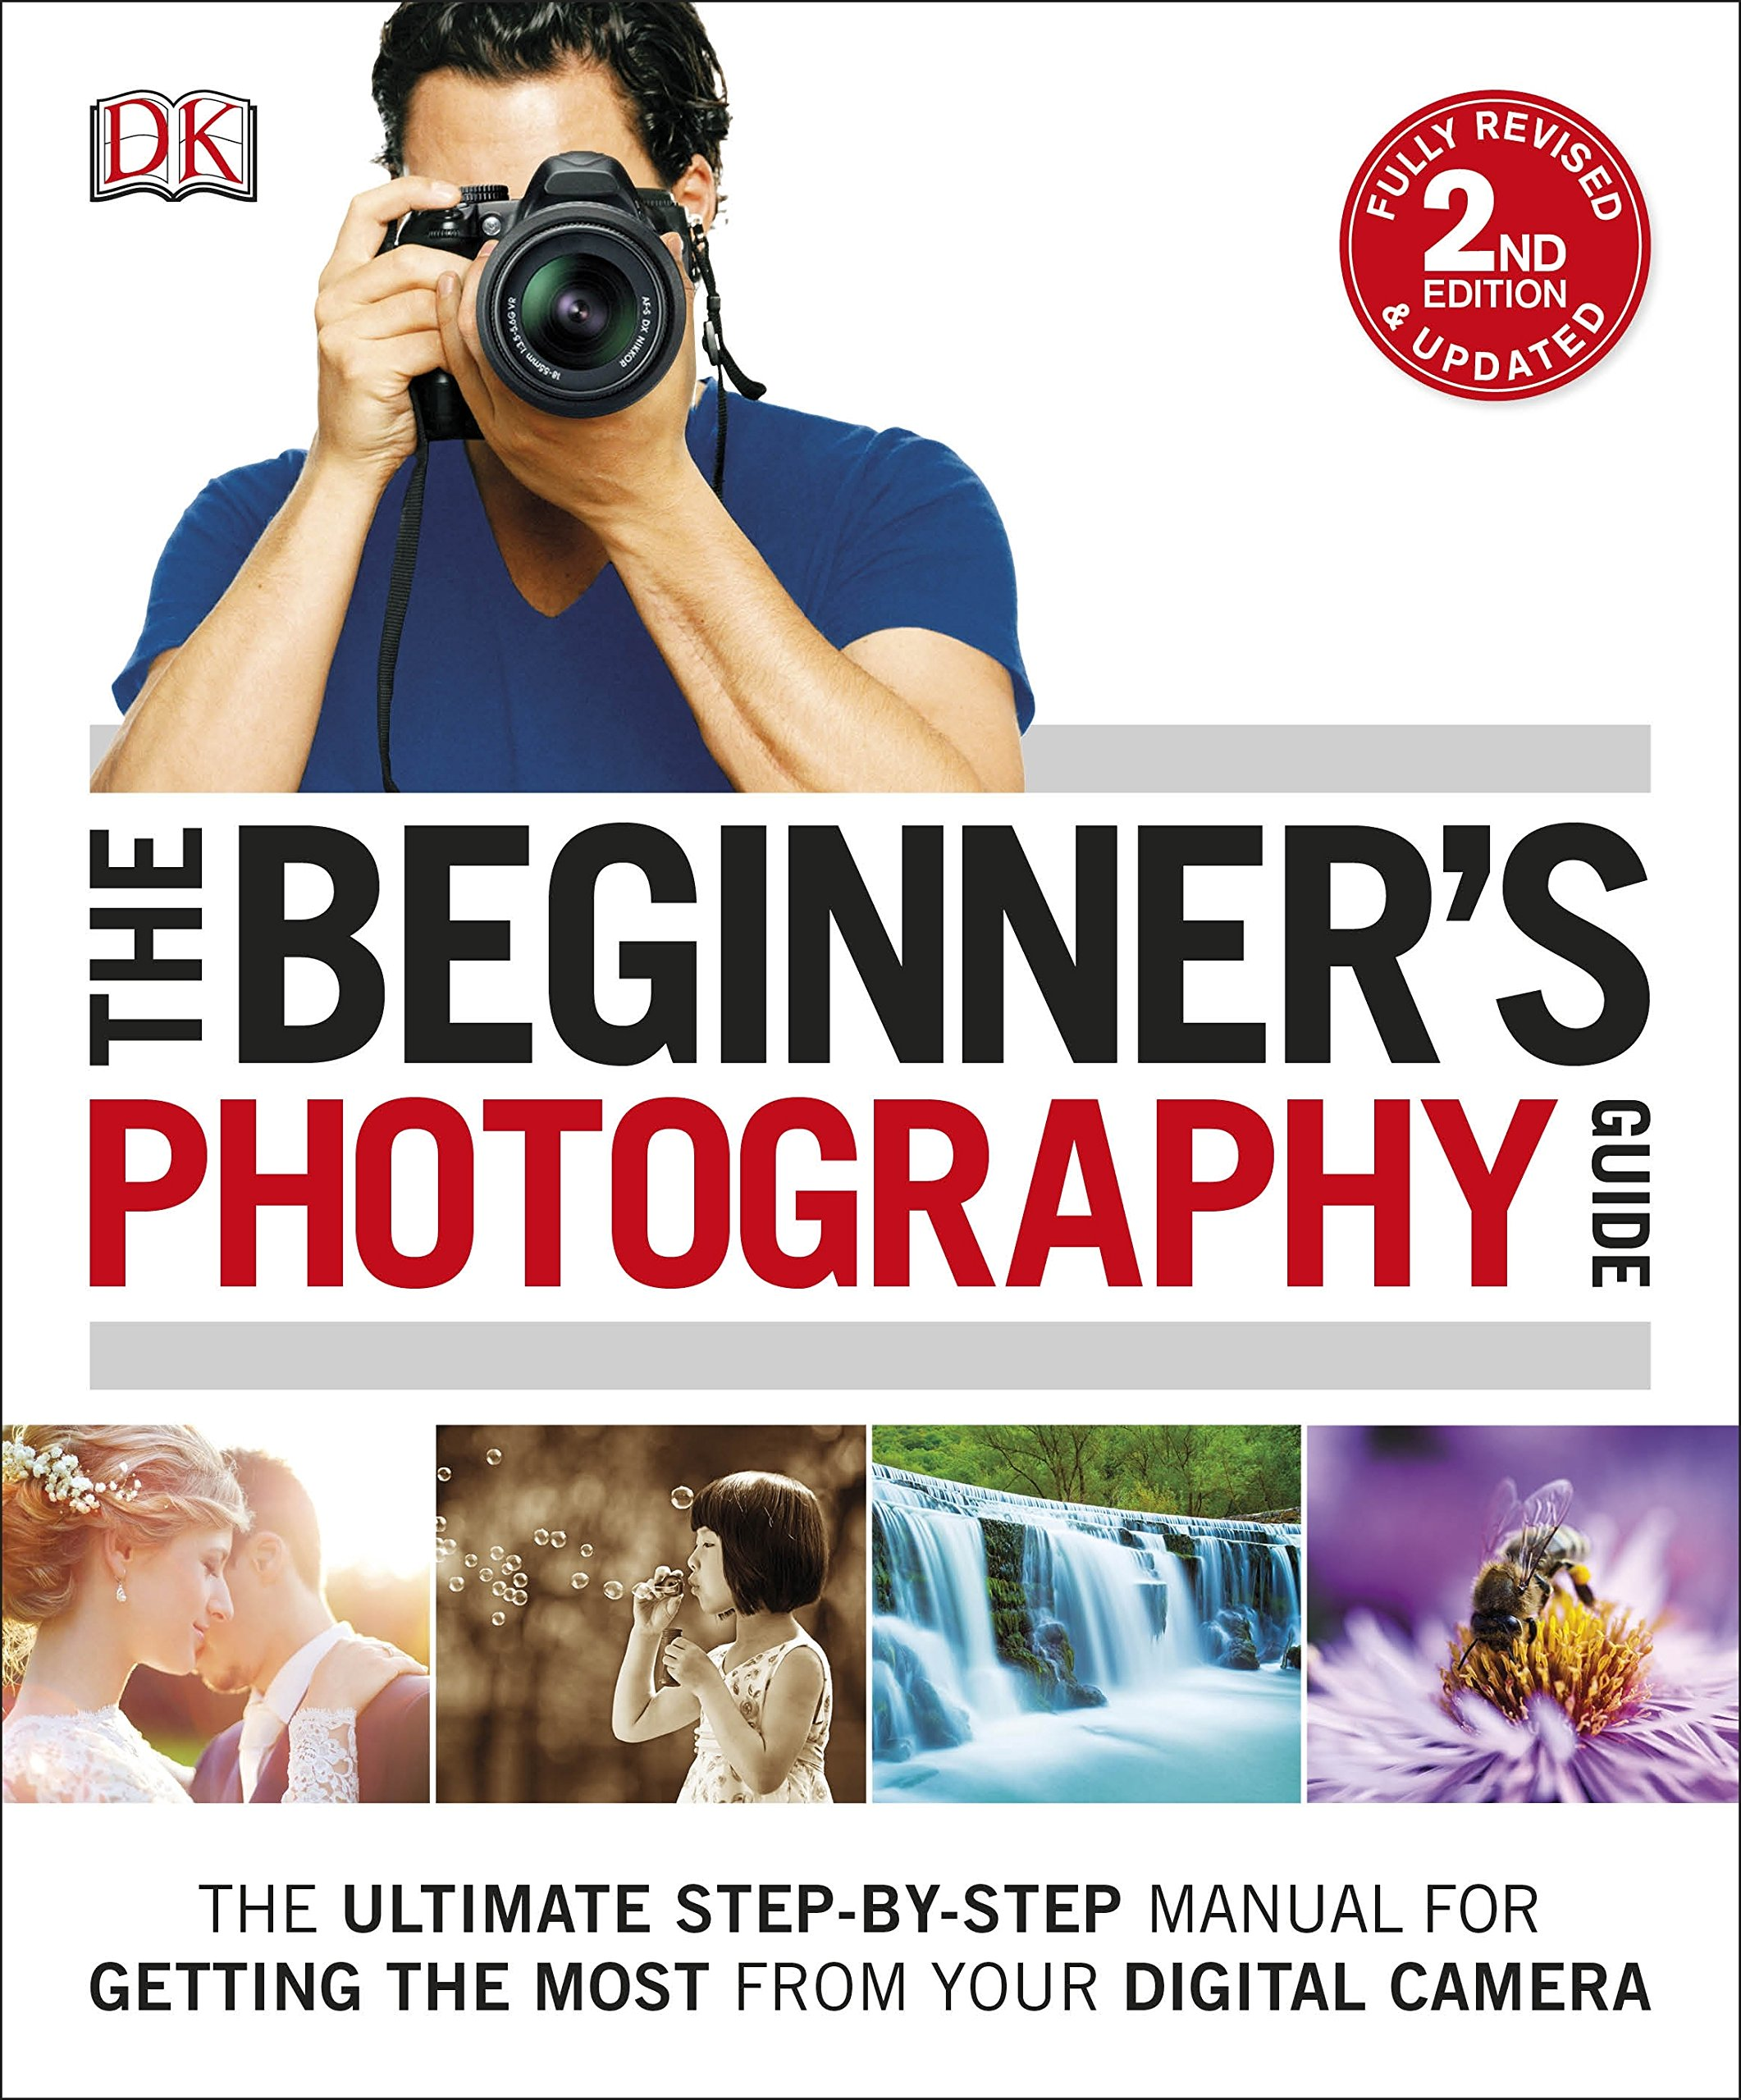 Get To Know Your Digital Camera - A Beginners Guide